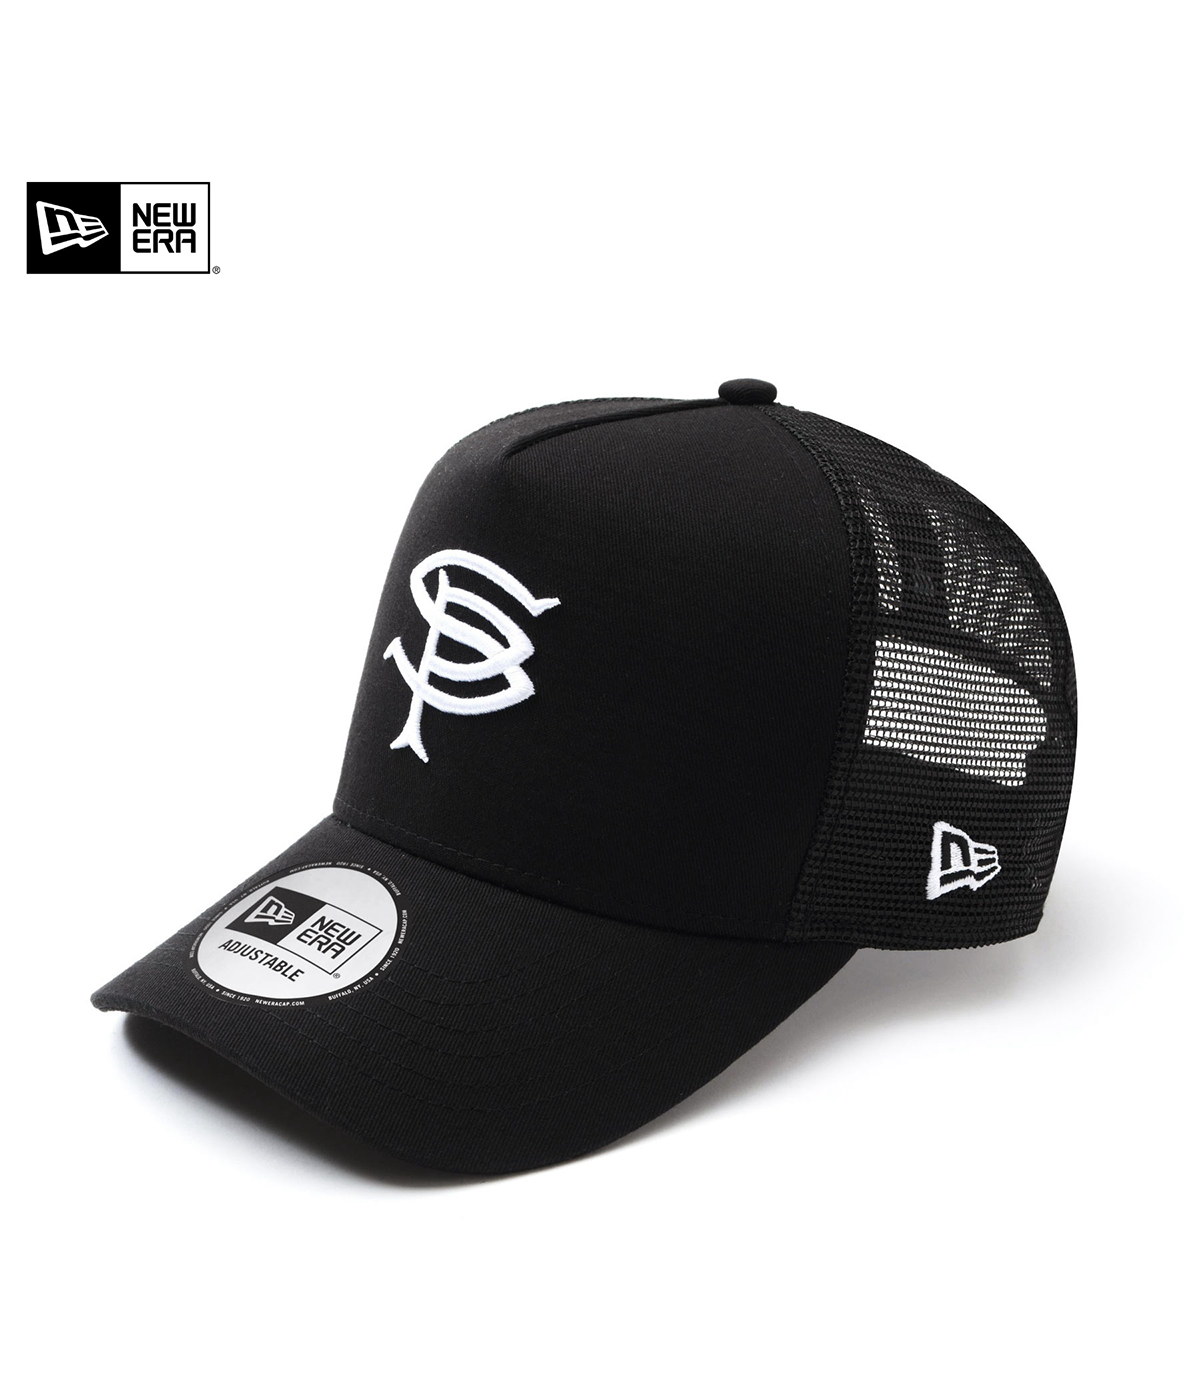 NEW ERA SP LOGO MESH CAP